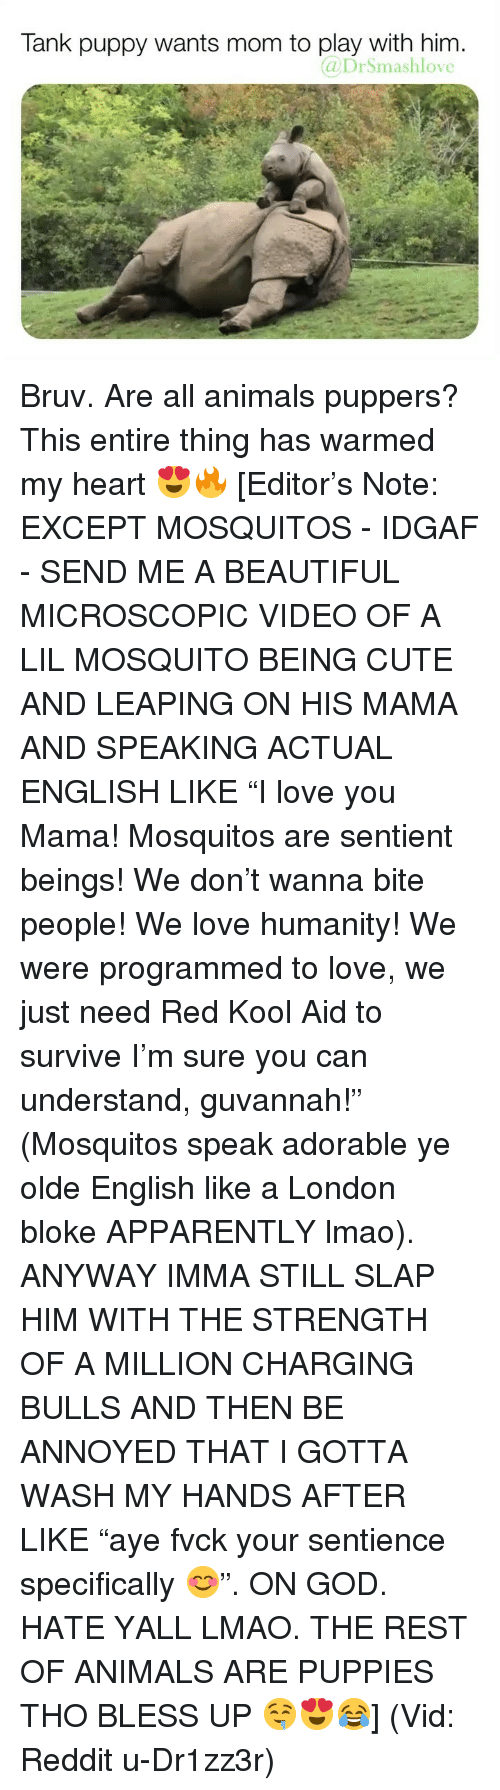 "Animals, Apparently, and Beautiful: Tank puppy wants mom to play with him.  DrSmashlove Bruv. Are all animals puppers? This entire thing has warmed my heart 😍🔥 [Editor's Note: EXCEPT MOSQUITOS - IDGAF - SEND ME A BEAUTIFUL MICROSCOPIC VIDEO OF A LIL MOSQUITO BEING CUTE AND LEAPING ON HIS MAMA AND SPEAKING ACTUAL ENGLISH LIKE ""I love you Mama! Mosquitos are sentient beings! We don't wanna bite people! We love humanity! We were programmed to love, we just need Red Kool Aid to survive I'm sure you can understand, guvannah!"" (Mosquitos speak adorable ye olde English like a London bloke APPARENTLY lmao). ANYWAY IMMA STILL SLAP HIM WITH THE STRENGTH OF A MILLION CHARGING BULLS AND THEN BE ANNOYED THAT I GOTTA WASH MY HANDS AFTER LIKE ""aye fvck your sentience specifically 😊"". ON GOD. HATE YALL LMAO. THE REST OF ANIMALS ARE PUPPIES THO BLESS UP 🤤😍😂] (Vid: Reddit u-Dr1zz3r)"